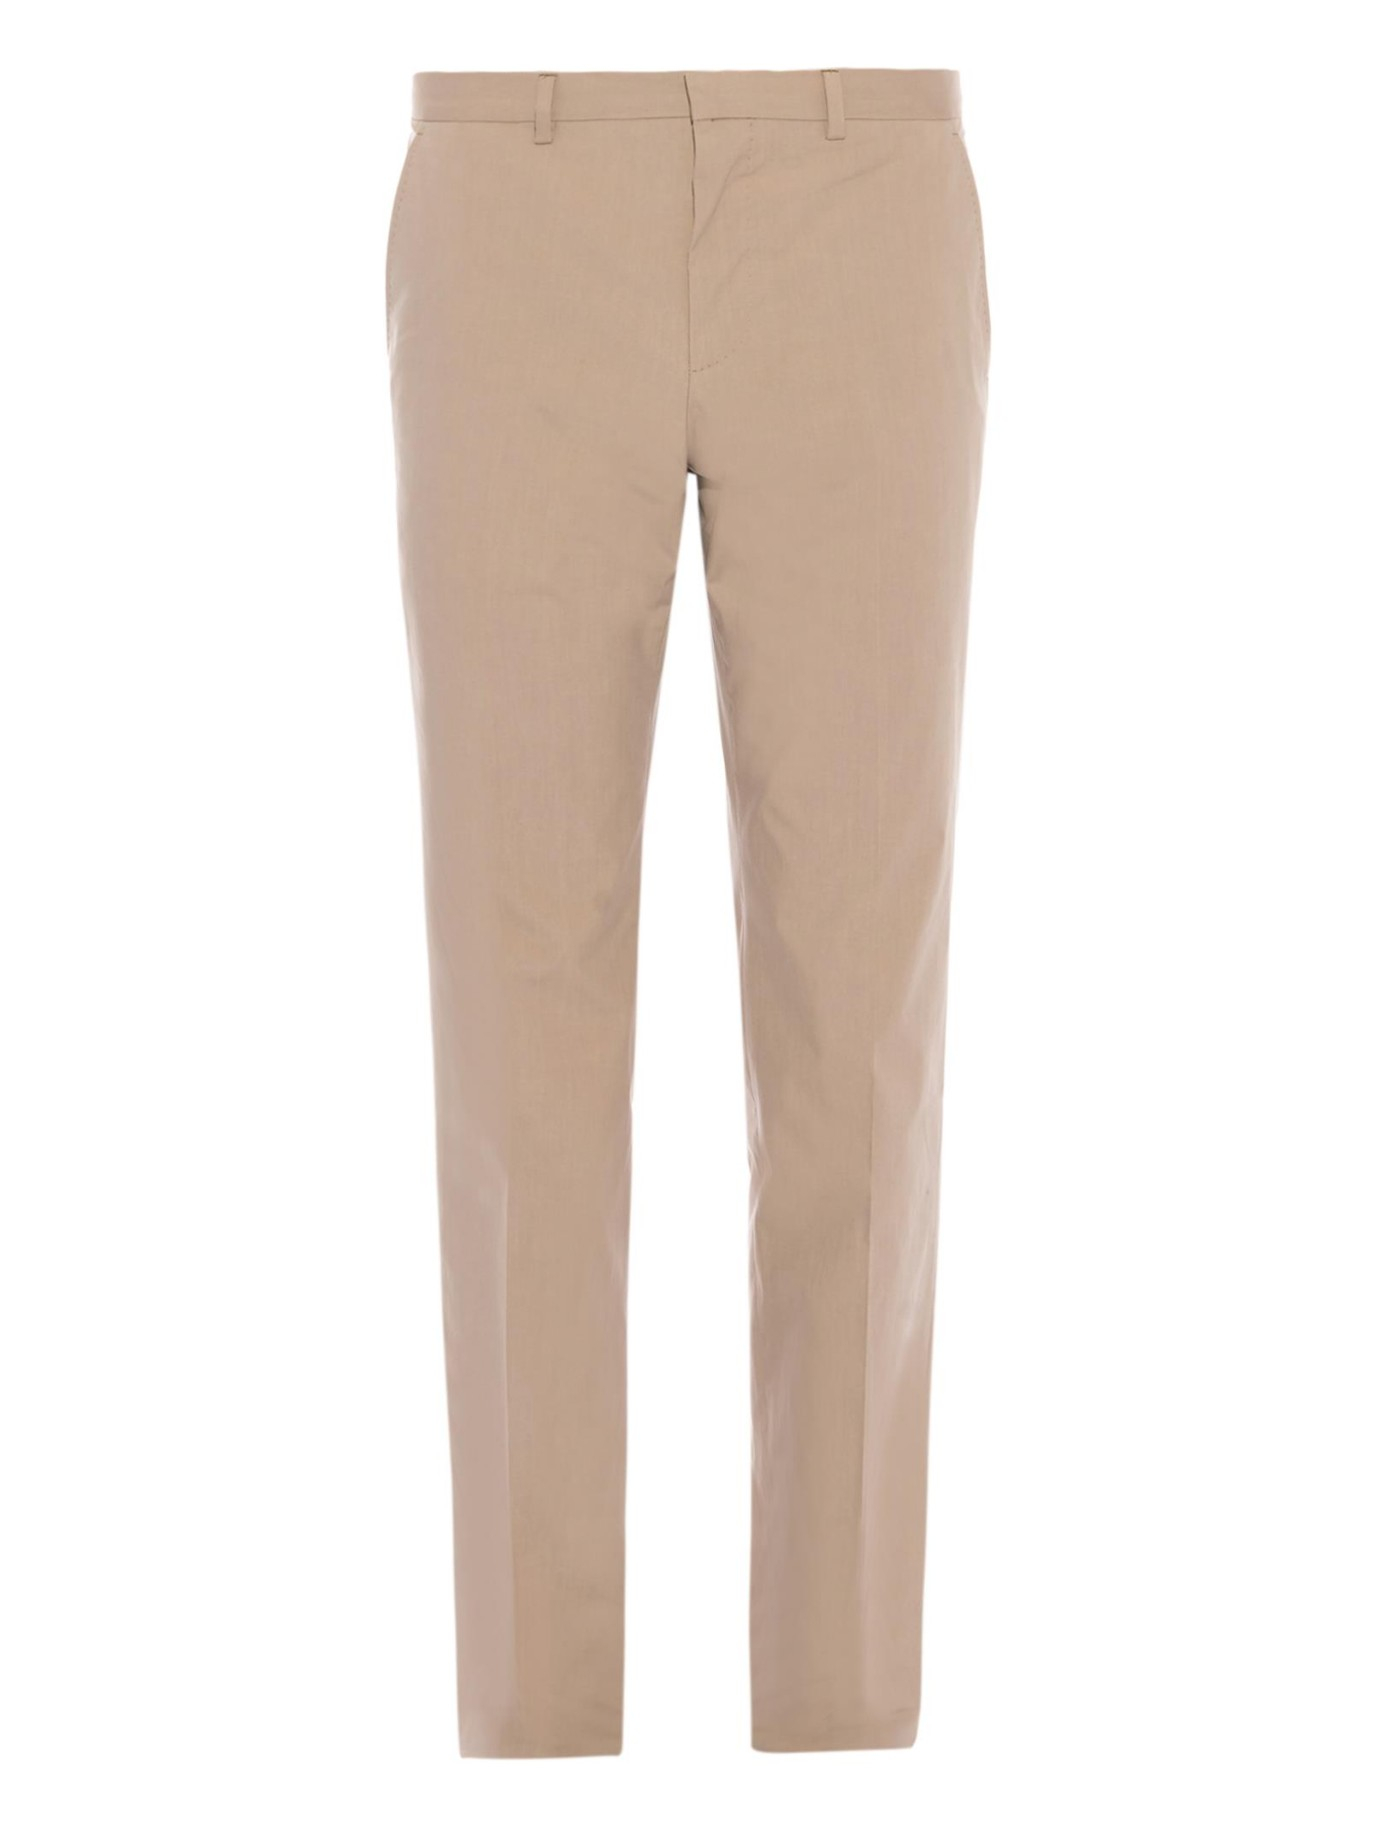 Natural Selection Trousers